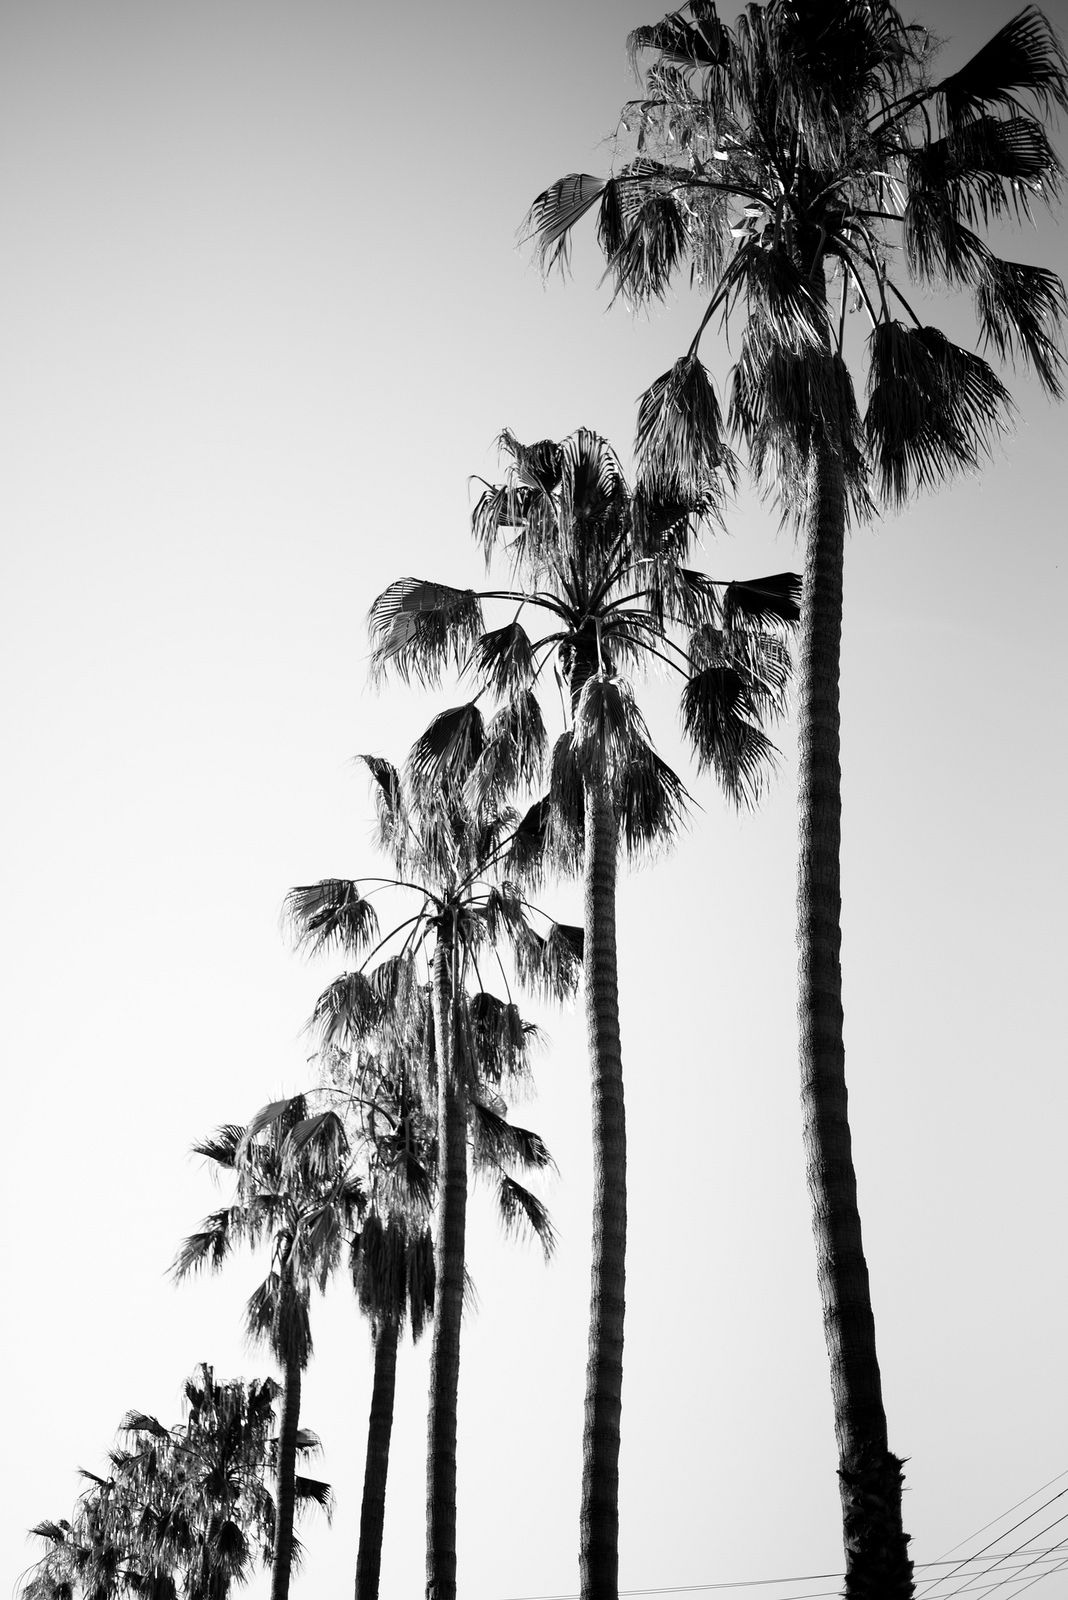 Cape Town Palm Trees Palm trees, Black and white